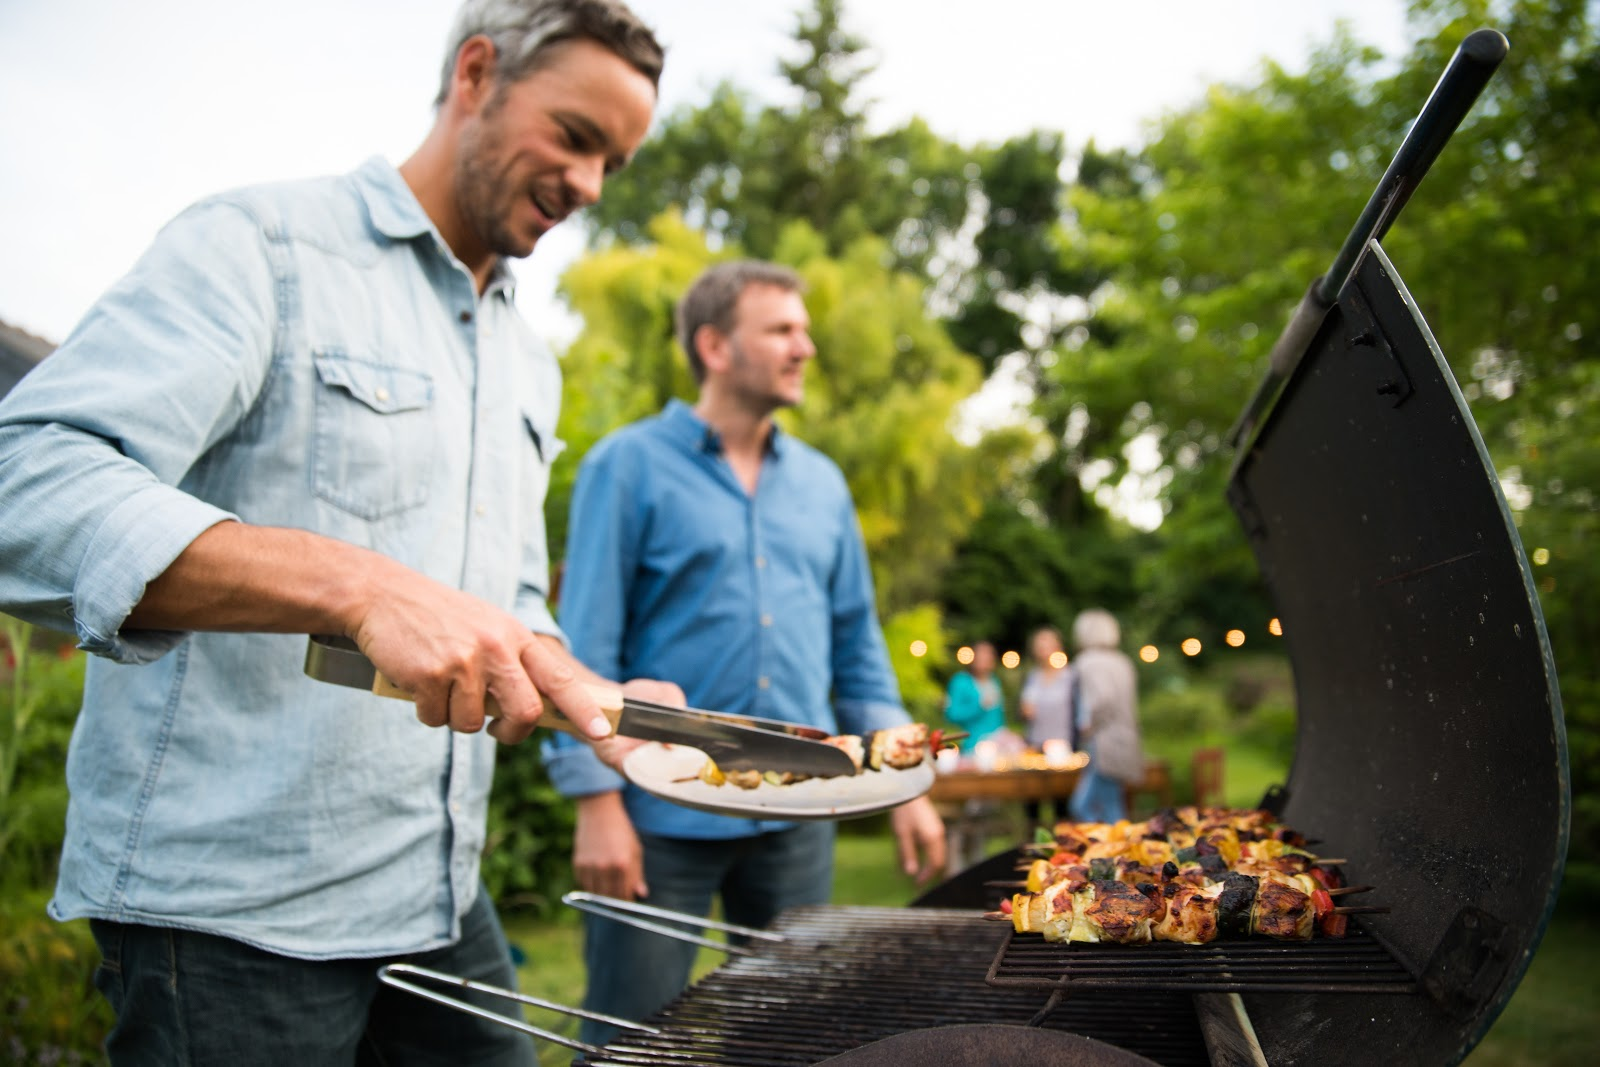 People at a backyard party enjoying grilled food